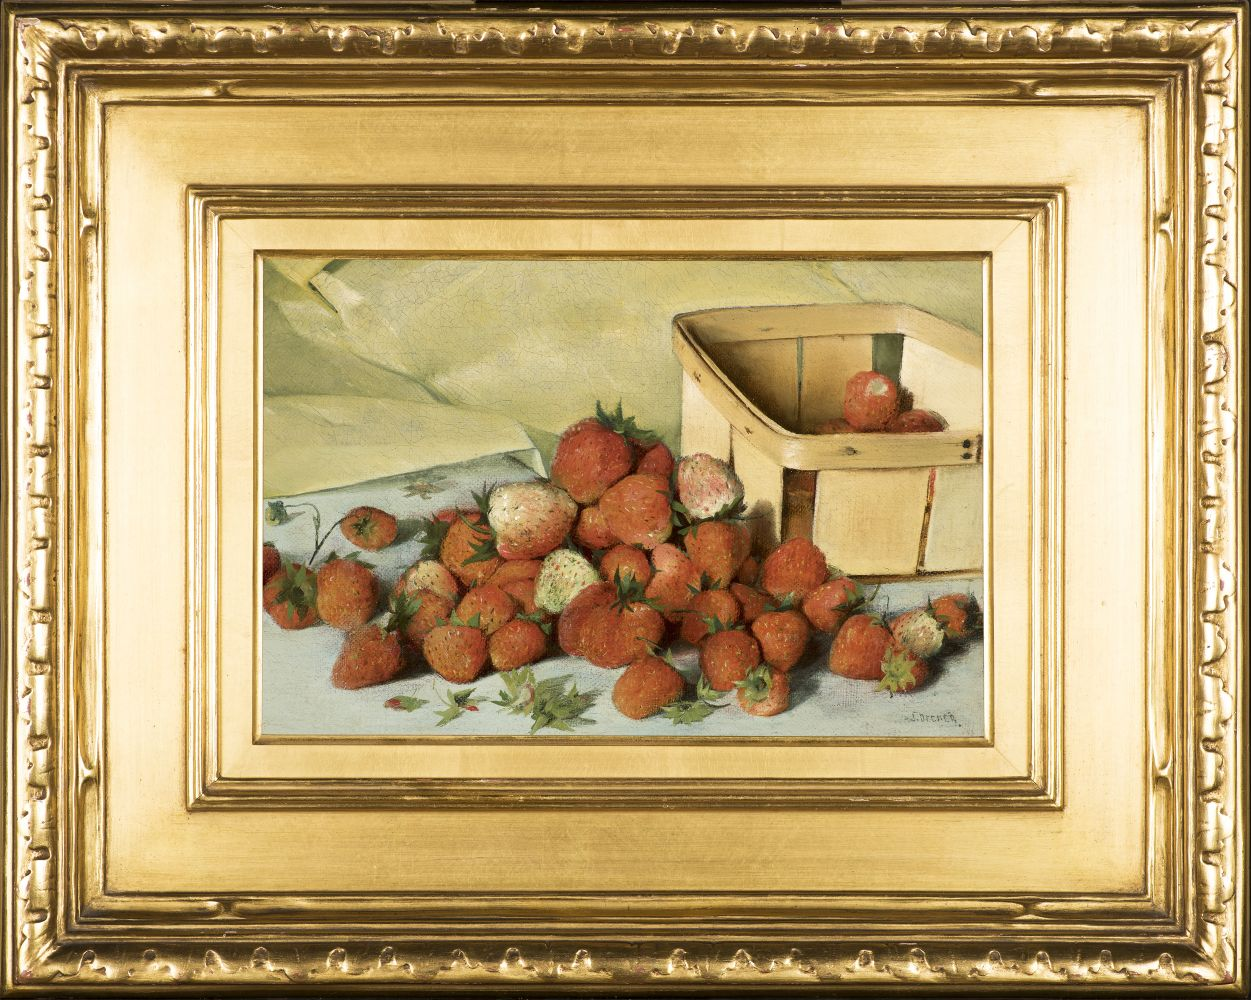 Joseph Decker (1853–1924), Still Life with Strawberries, c. 1885, oil on canvas, 8 x 11 7/8 in., signed lower right: J. Decker (framed)